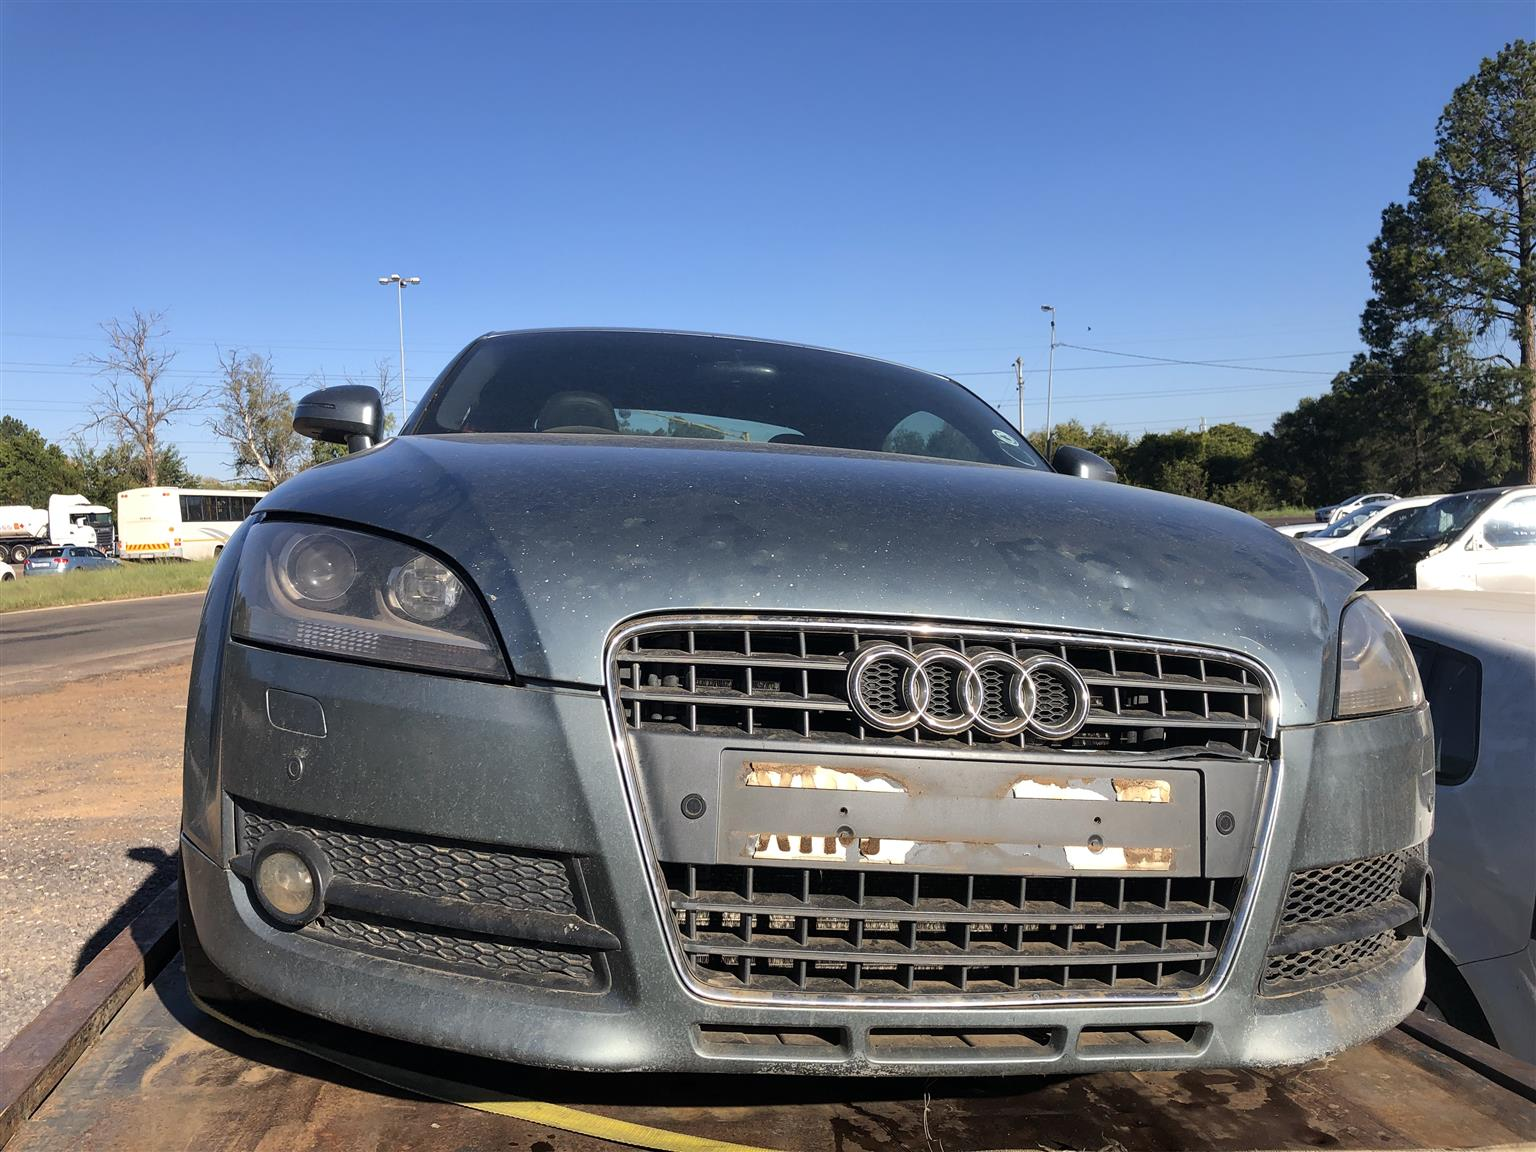 Audi TT mk2 2 0 turbo stripping for spares | Junk Mail